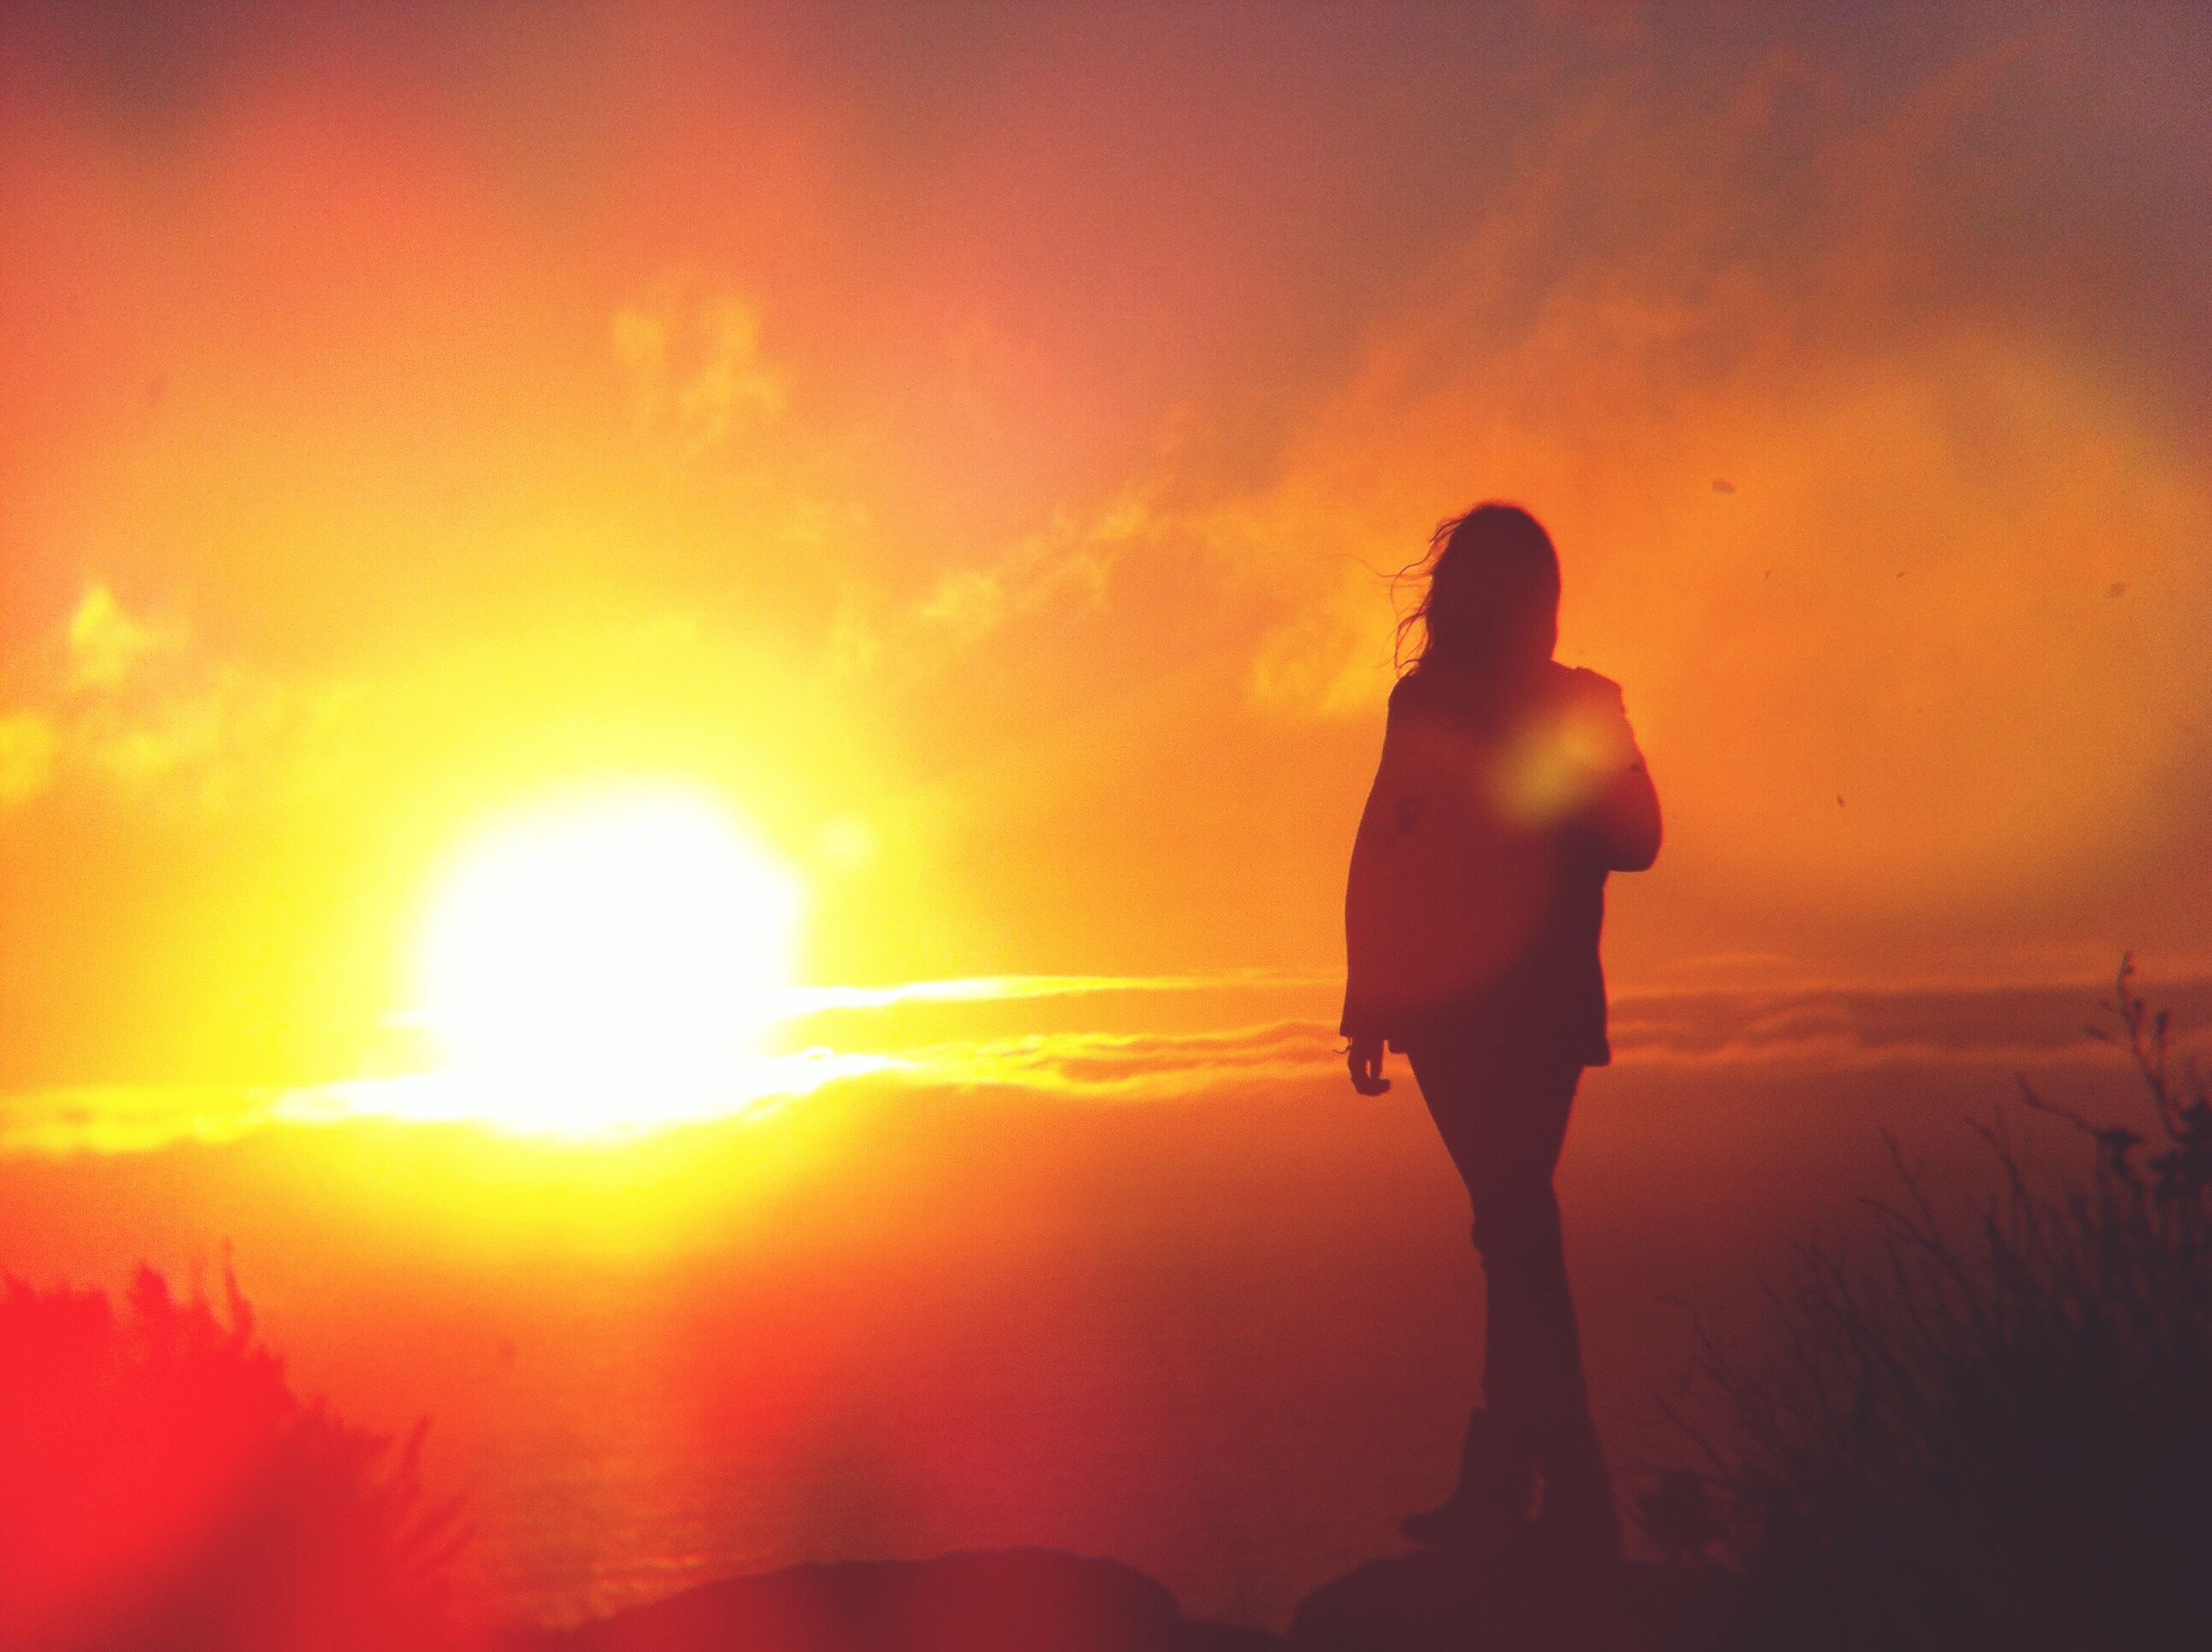 sunset, sun, silhouette, orange color, lifestyles, leisure activity, sky, standing, men, full length, sunlight, beauty in nature, rear view, sunbeam, scenics, nature, lens flare, tranquility